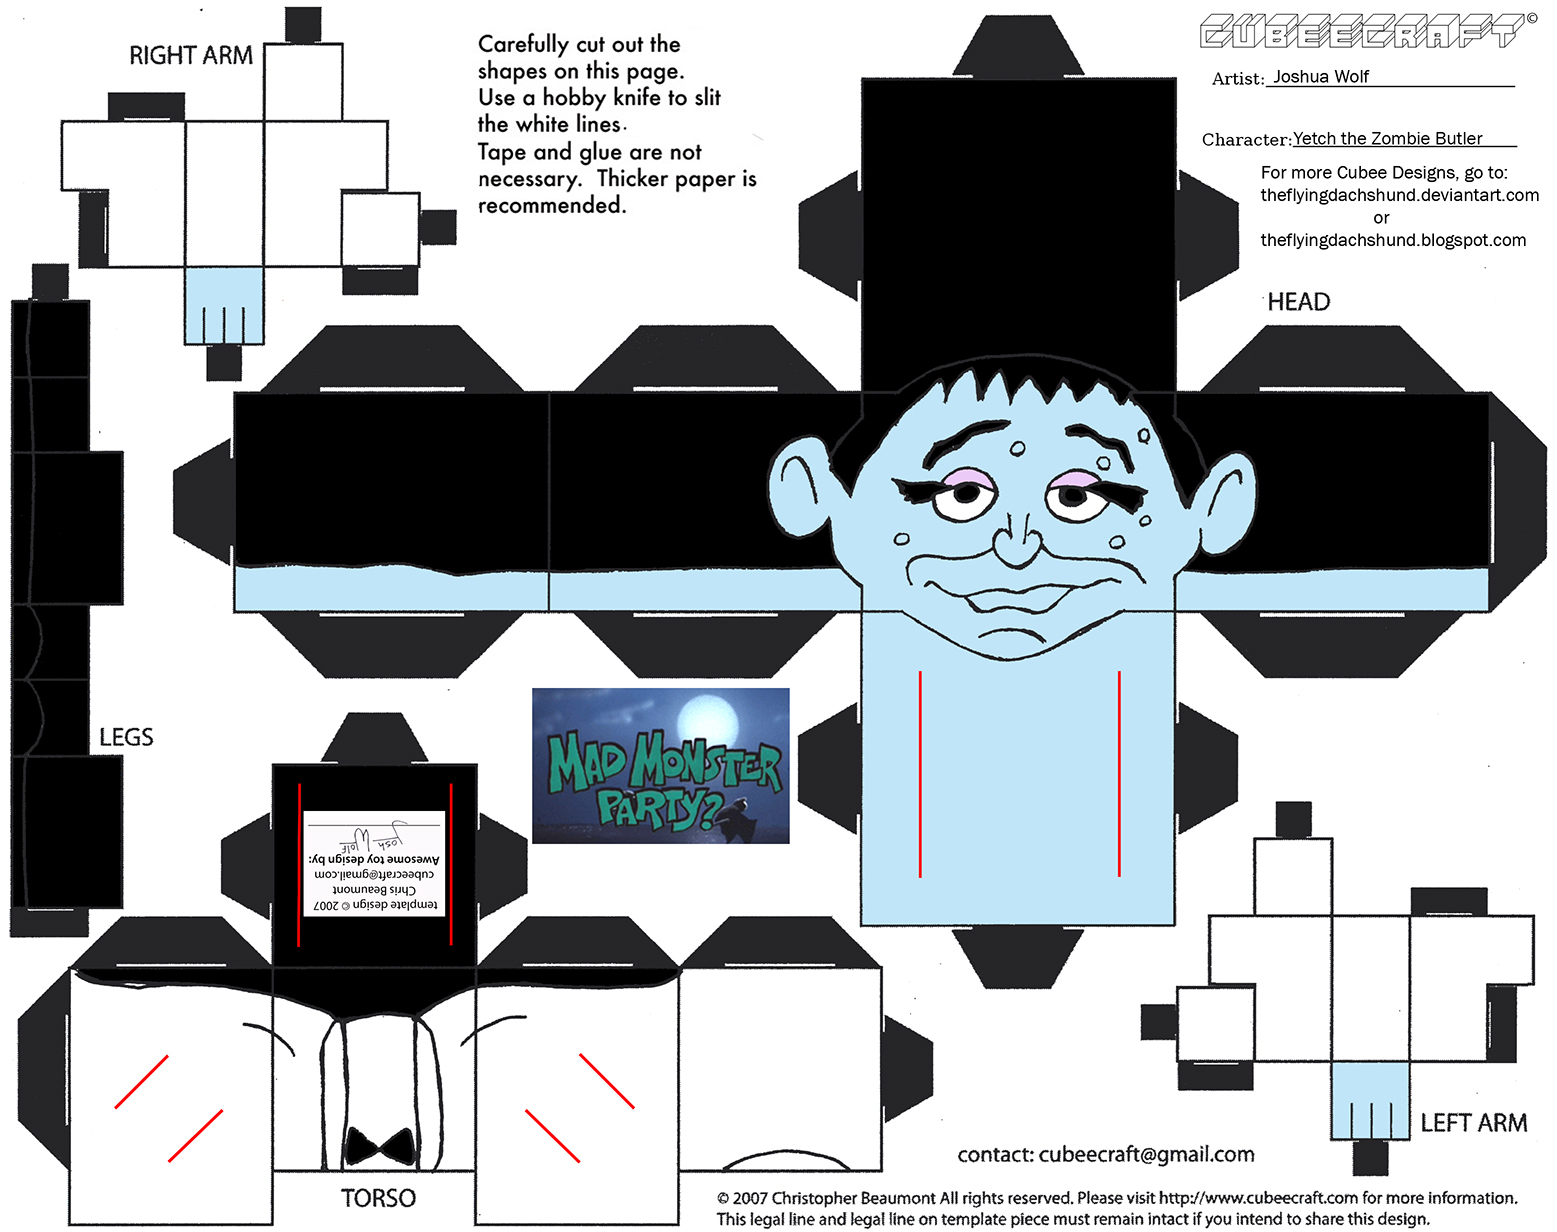 MMP2: Yetch the Zombie Butler Cubee